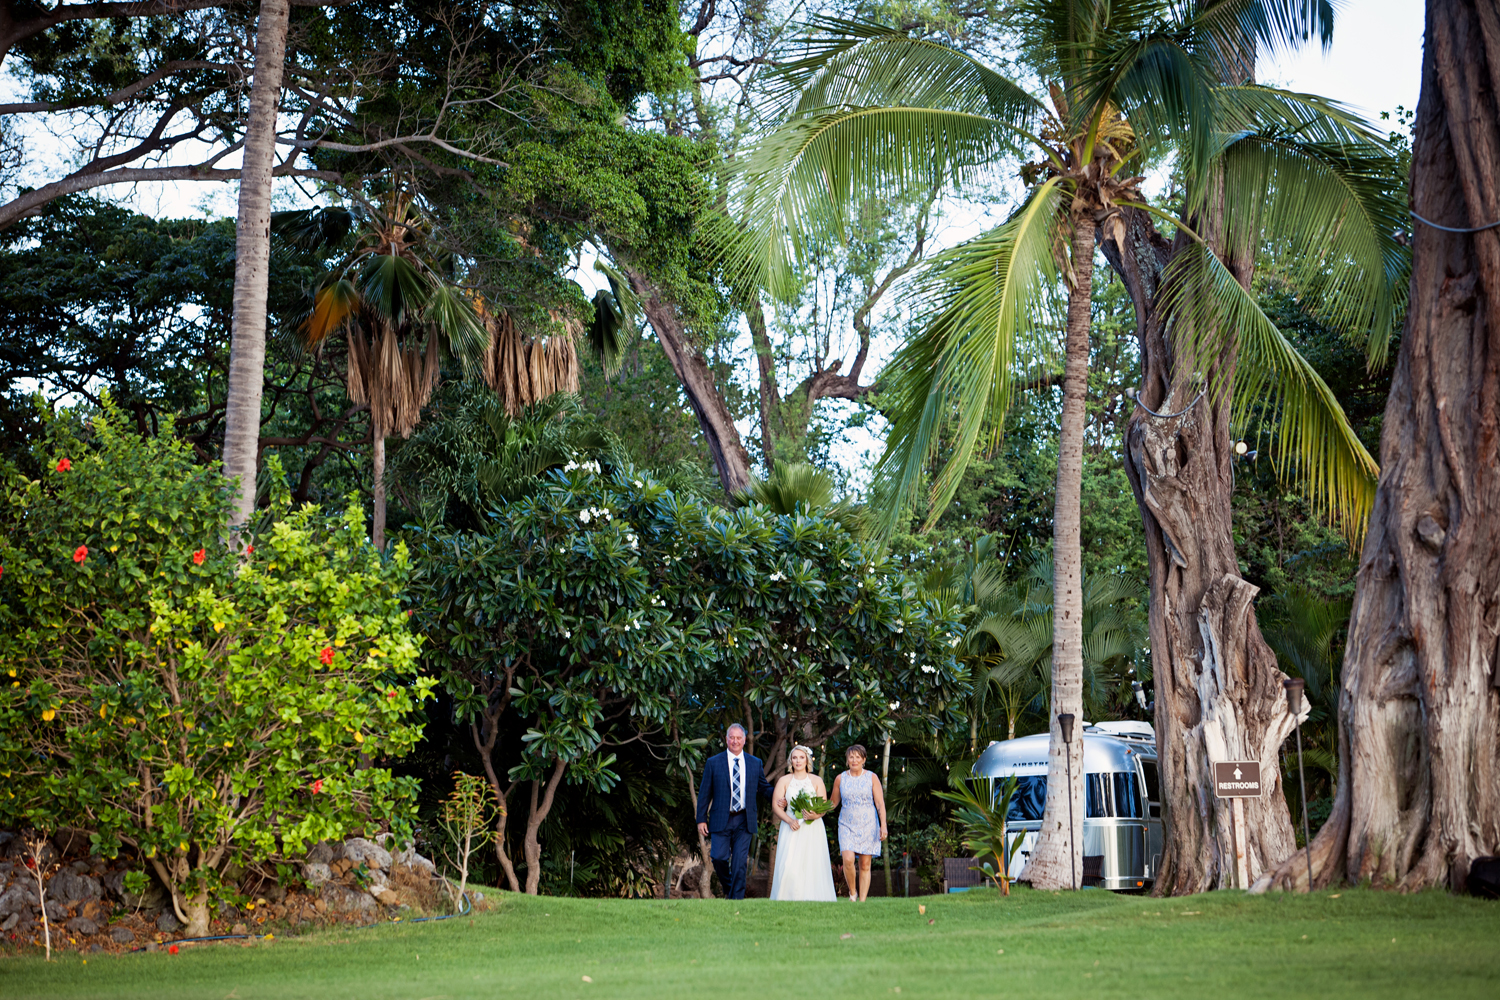 Outdoor wedding in Hawaii by Bliss